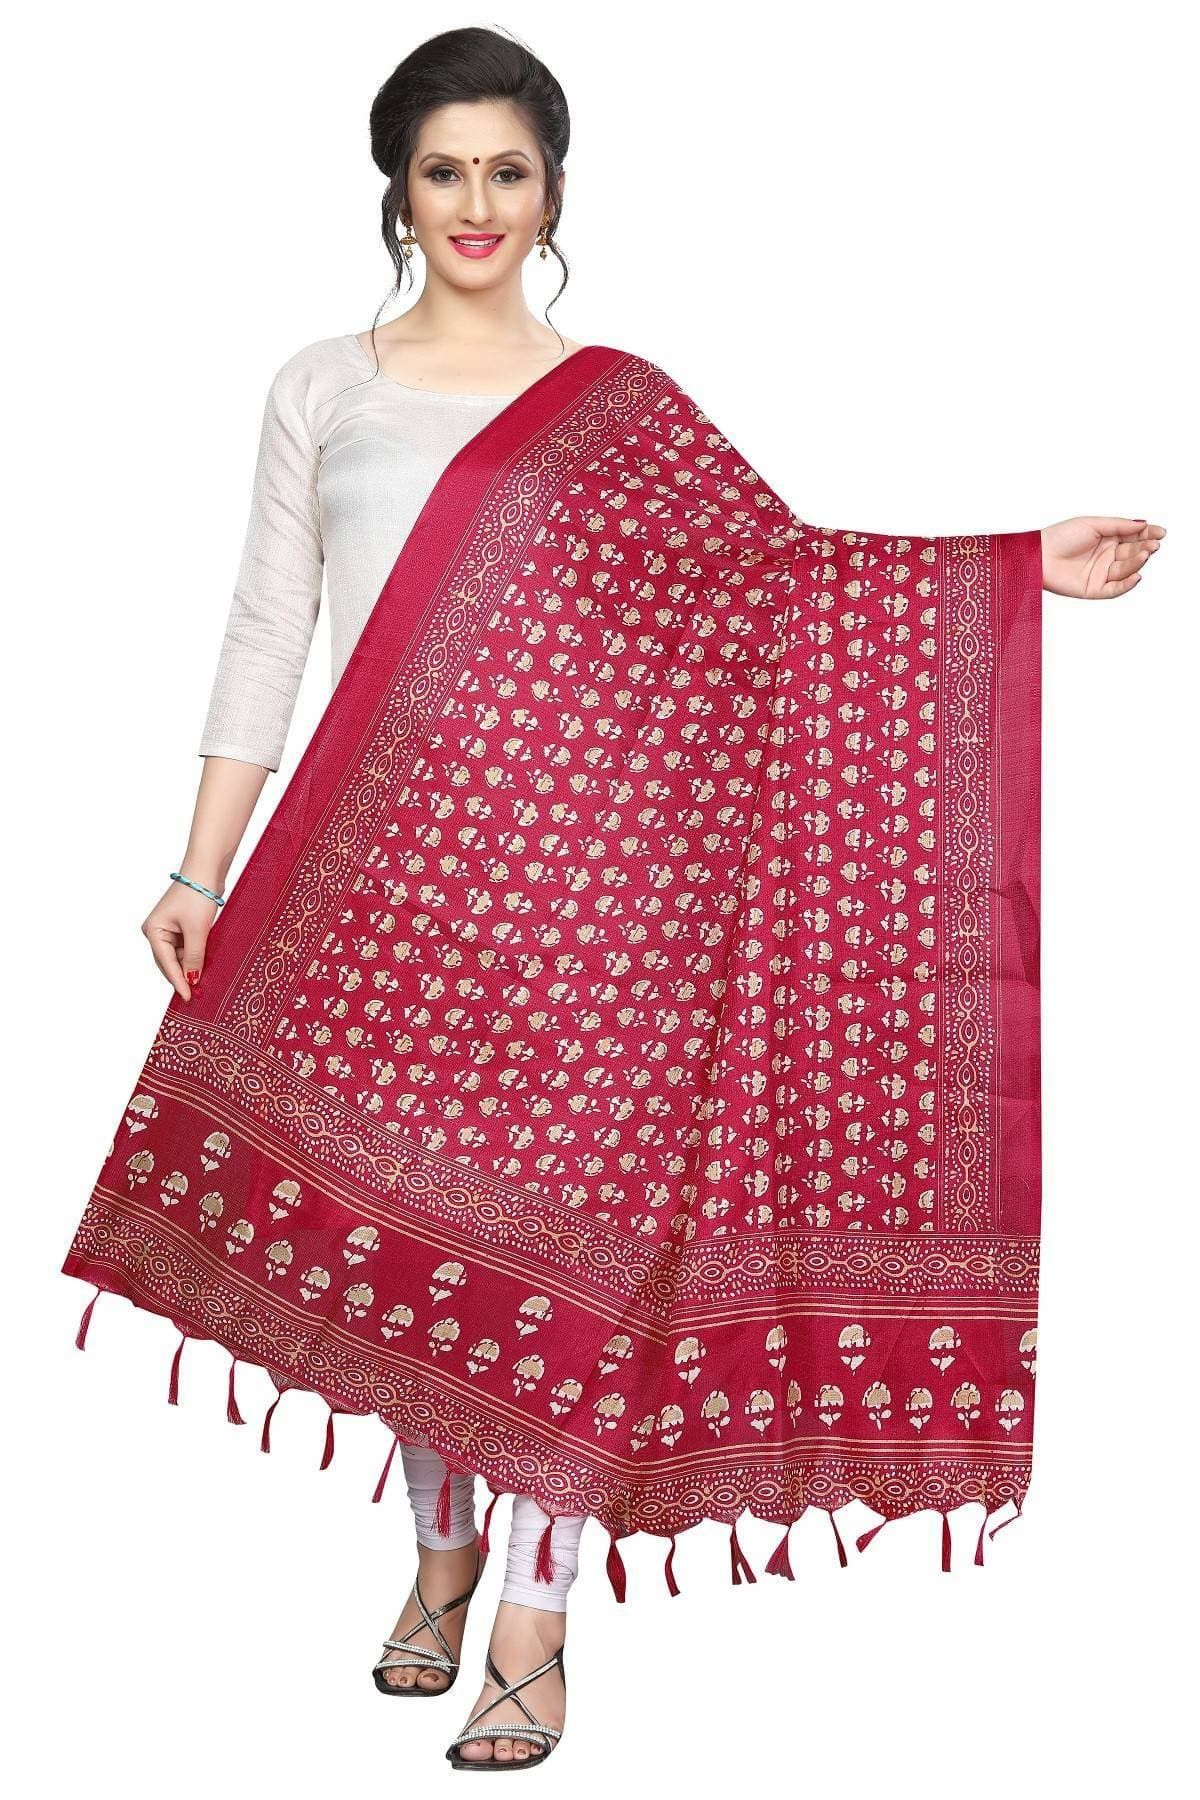 Vamika Red Printed Khadi Bhagalpuri Latest Dupatta